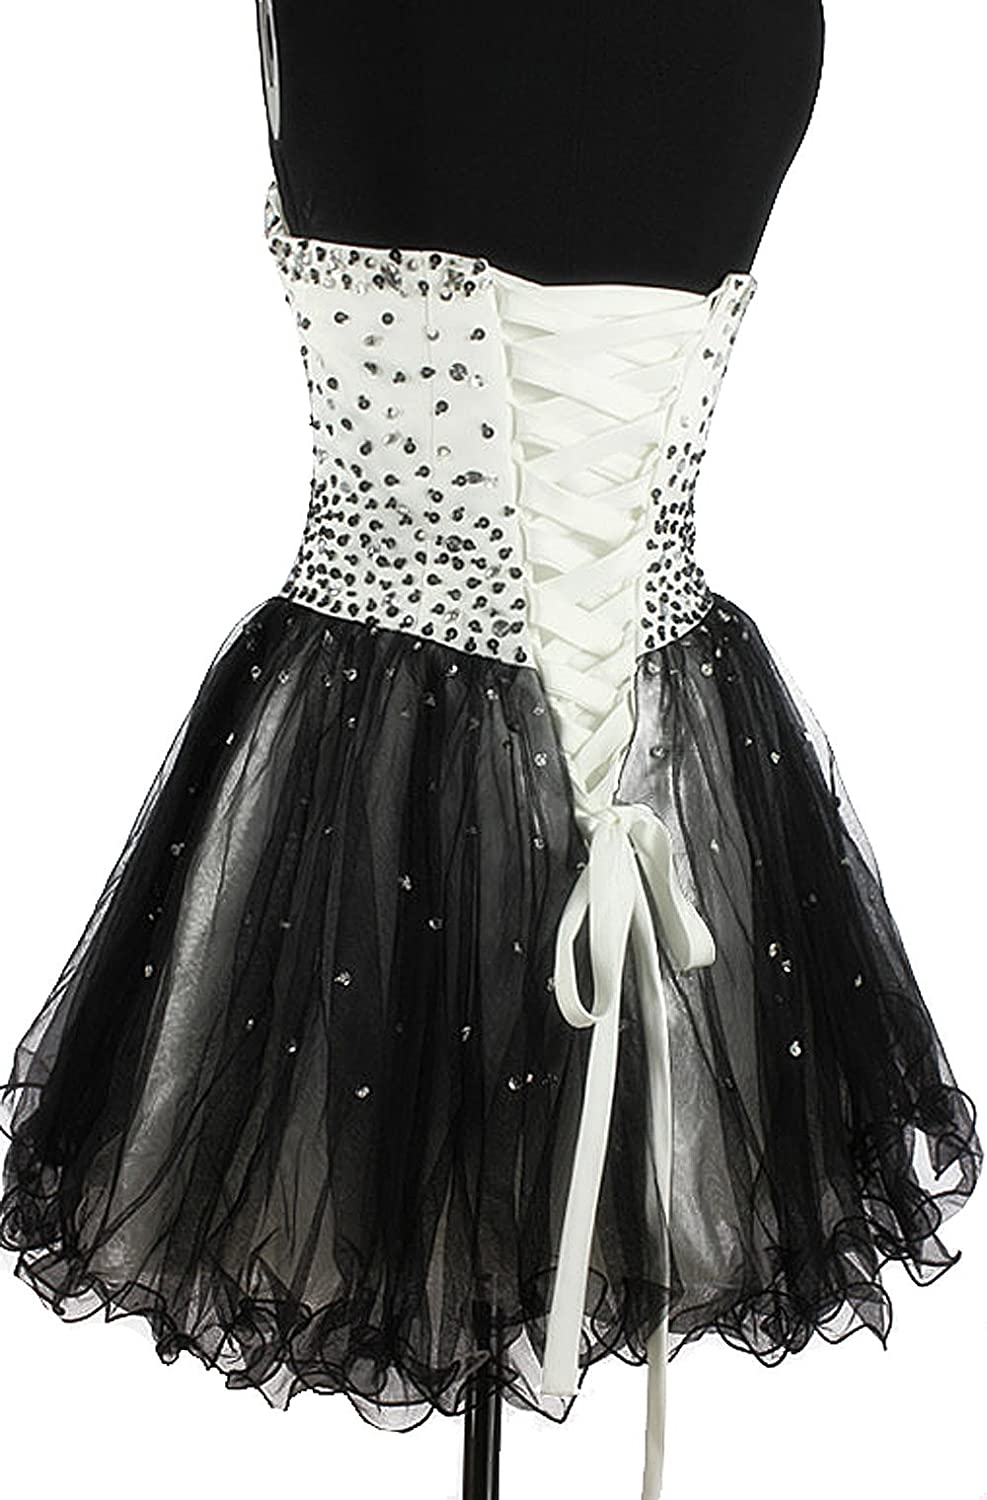 CharmingBridal Beaded Strapless Short Mini Prom Dress Cocktail Party Ball Gown